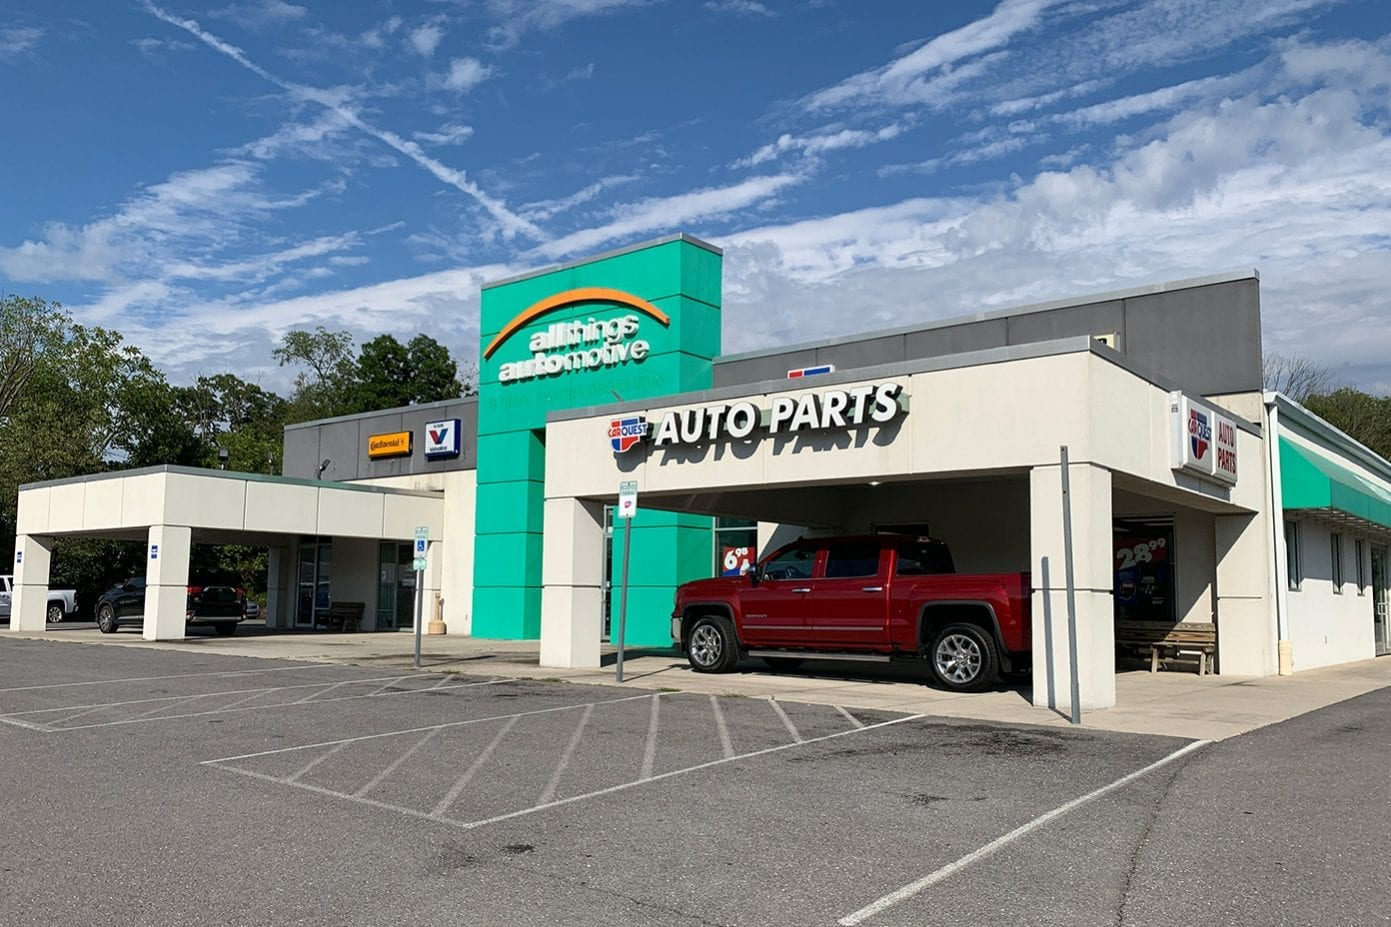 All Things Automotive - McConnellsburg, PA